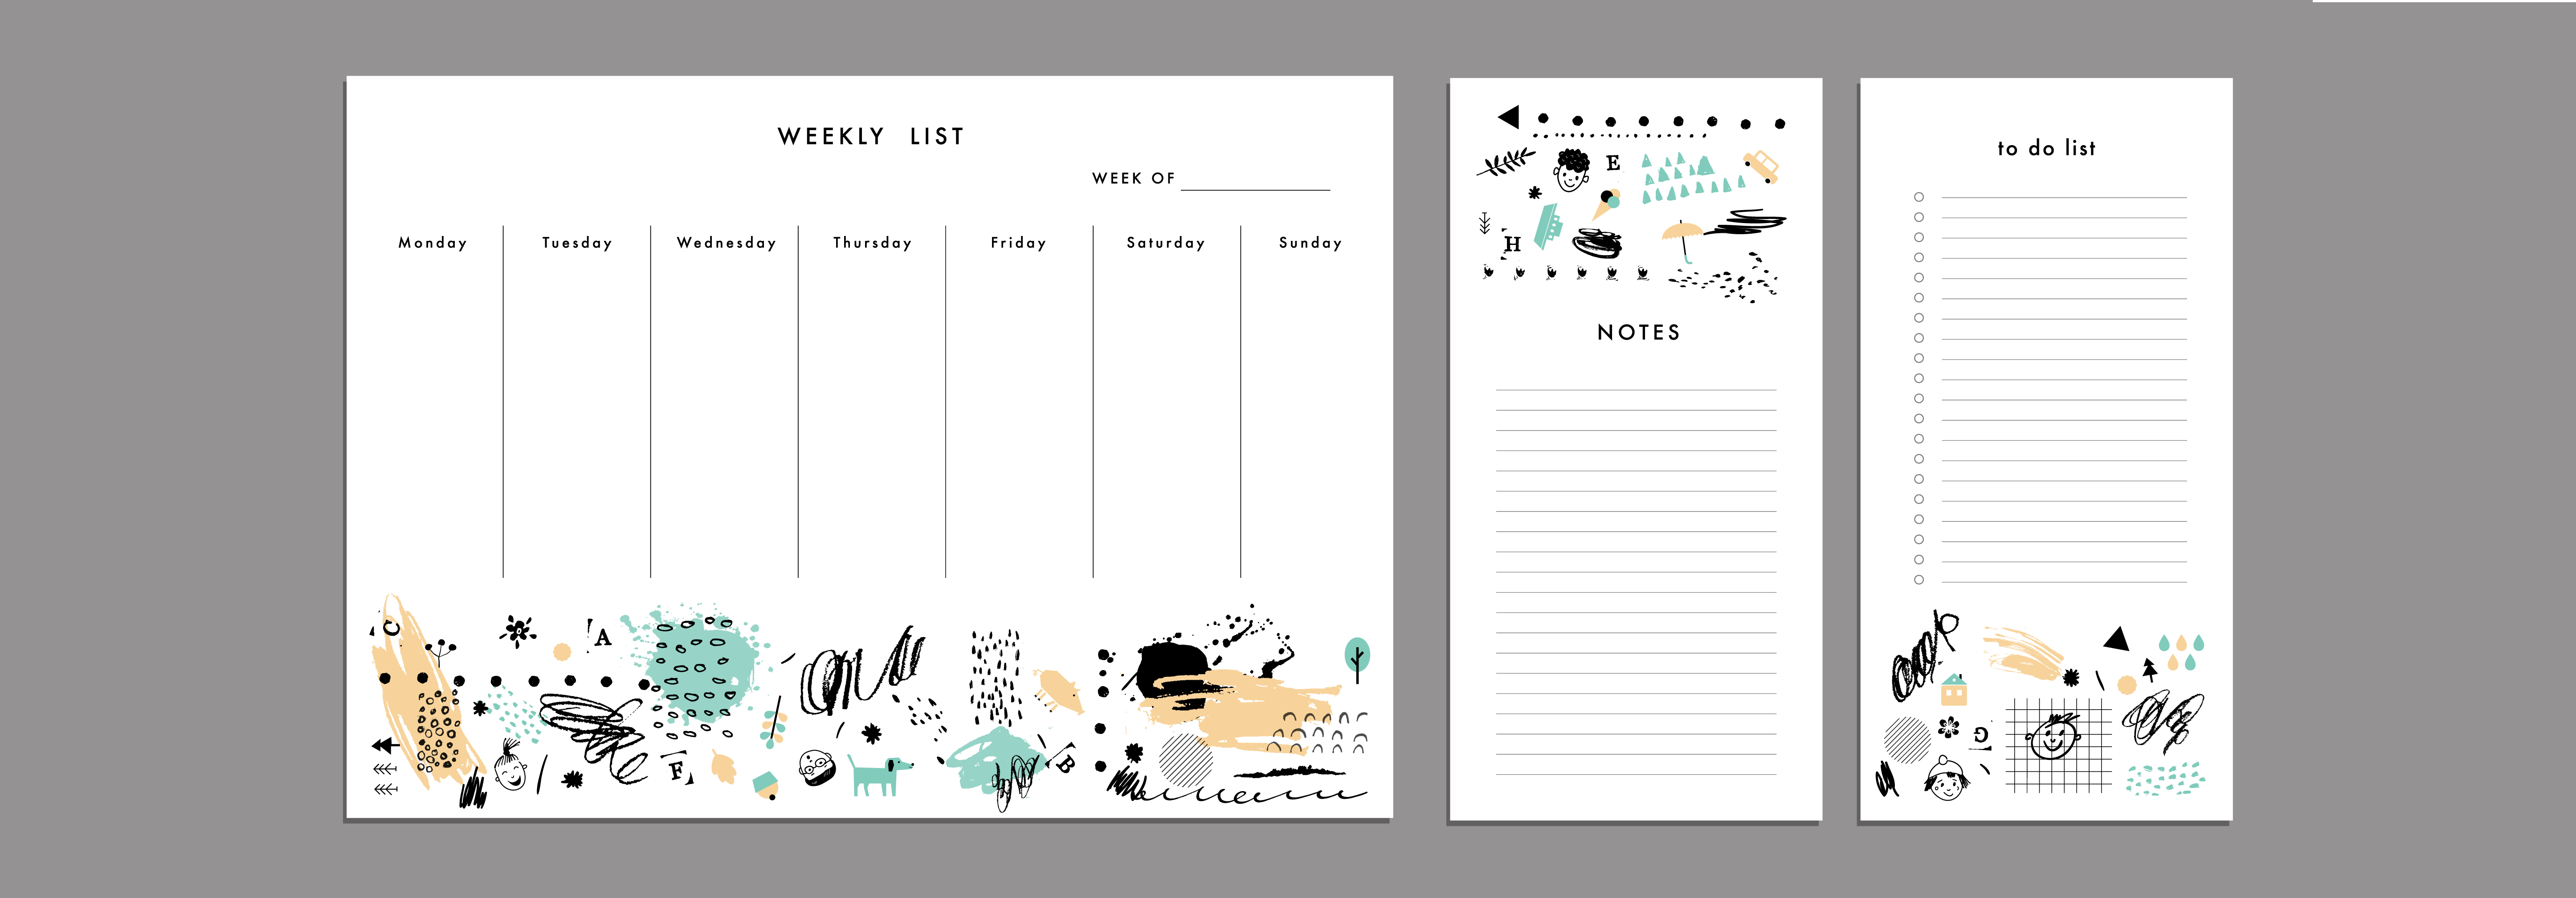 create a to do list for effect time management